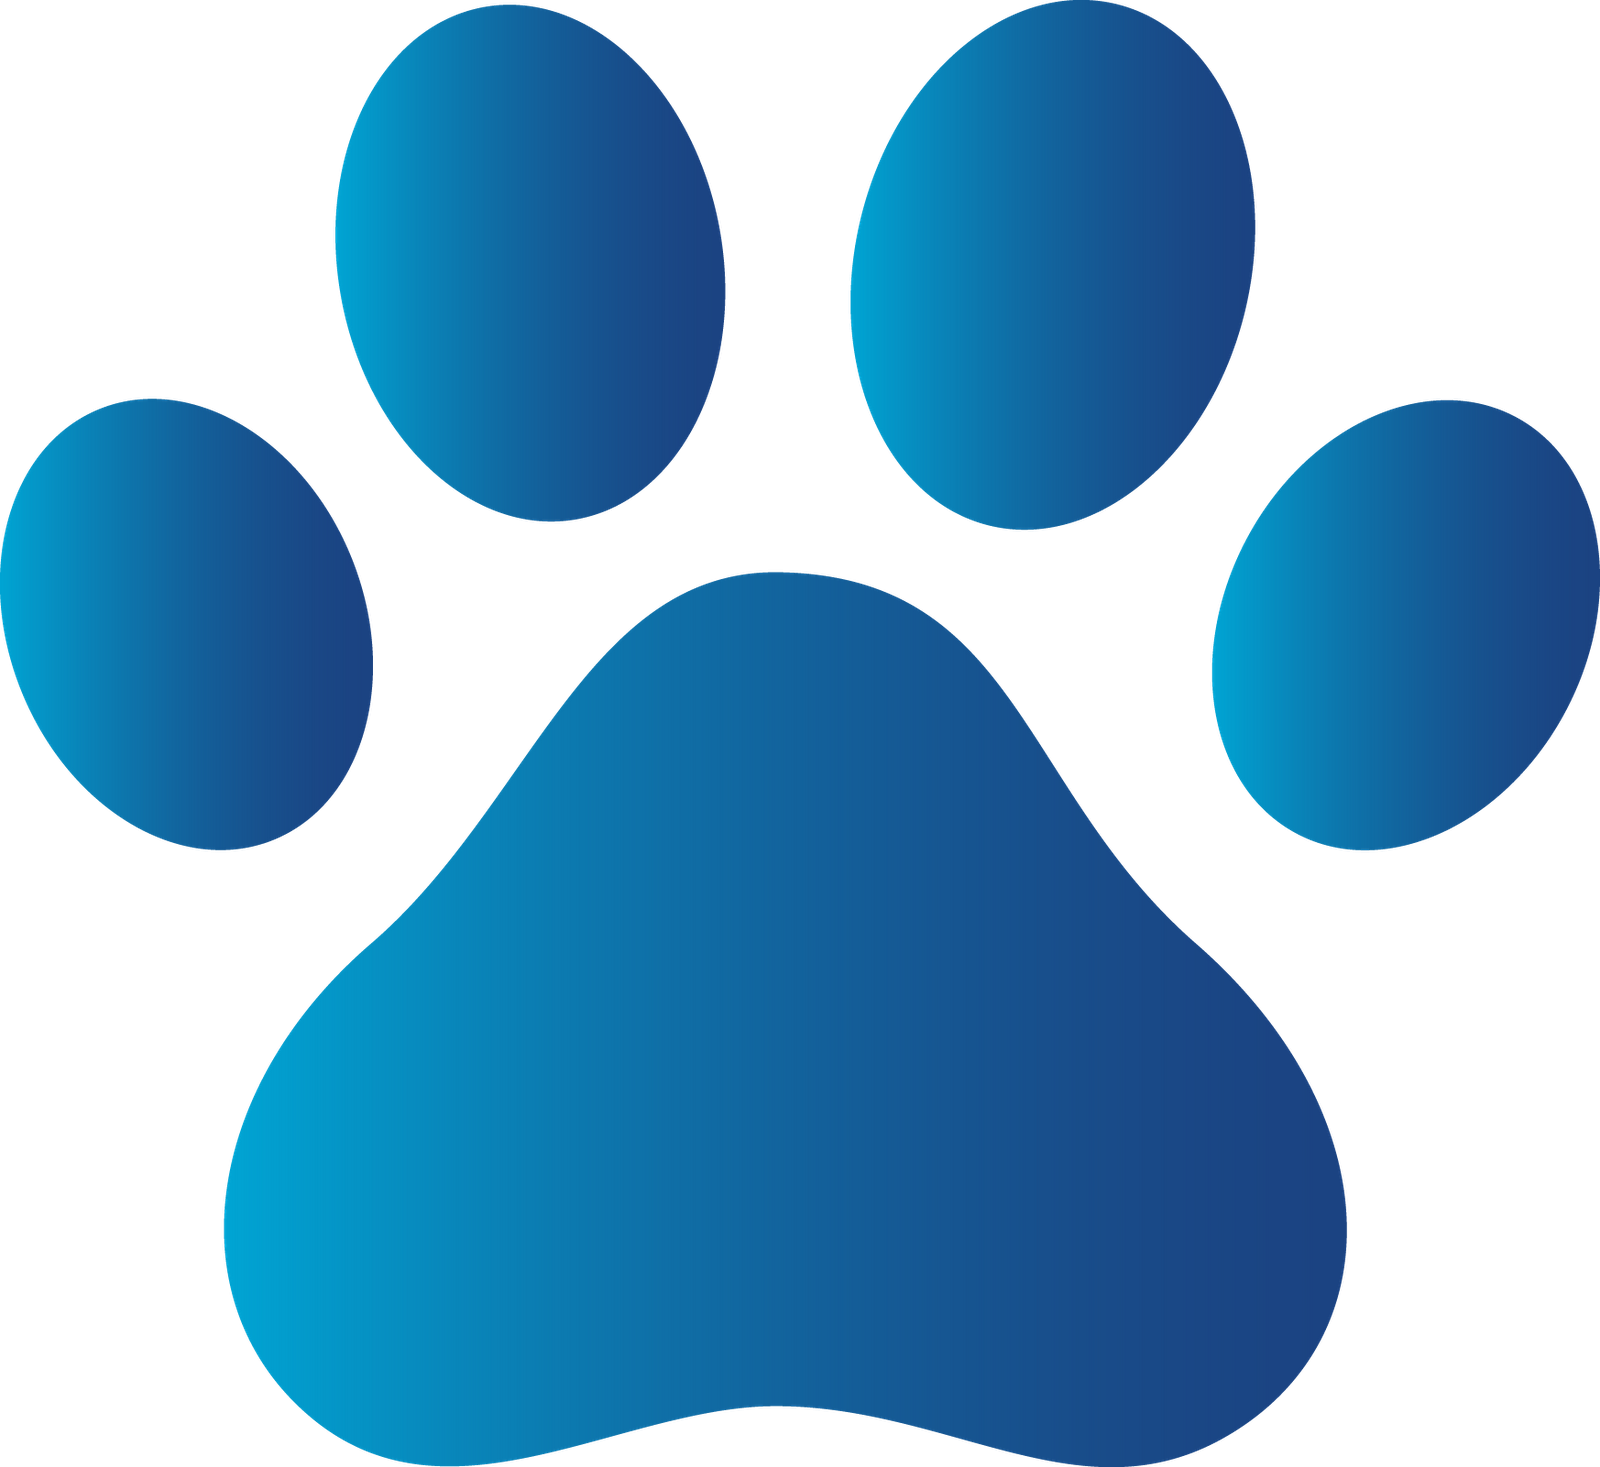 Blues clues paw print. Paws clipart dawg